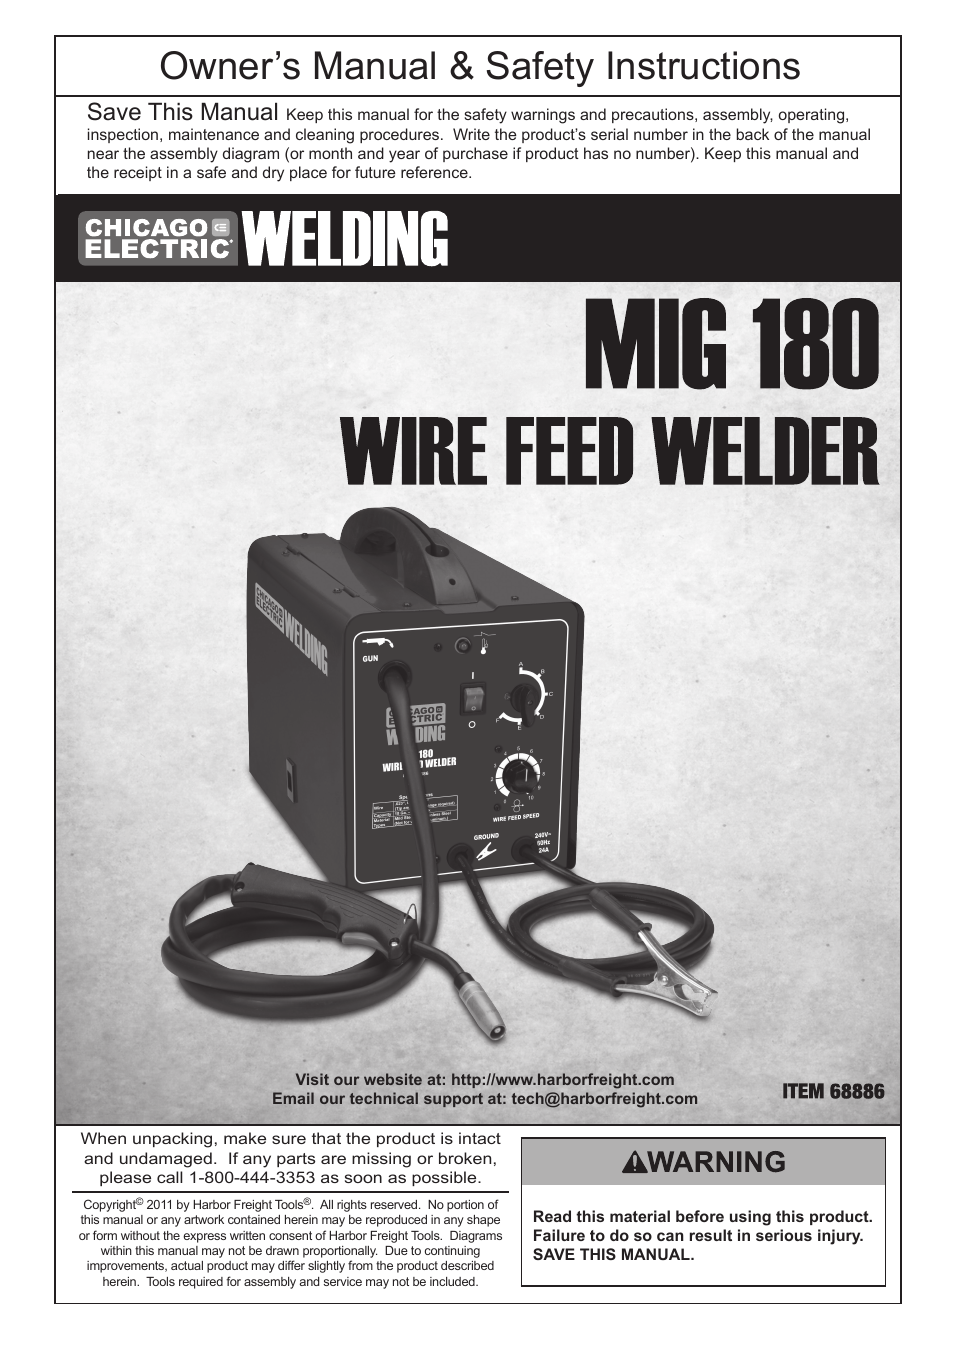 Chicago Electric MIG 180 Wire Feed Welder 68886 User Manual | 32 pages